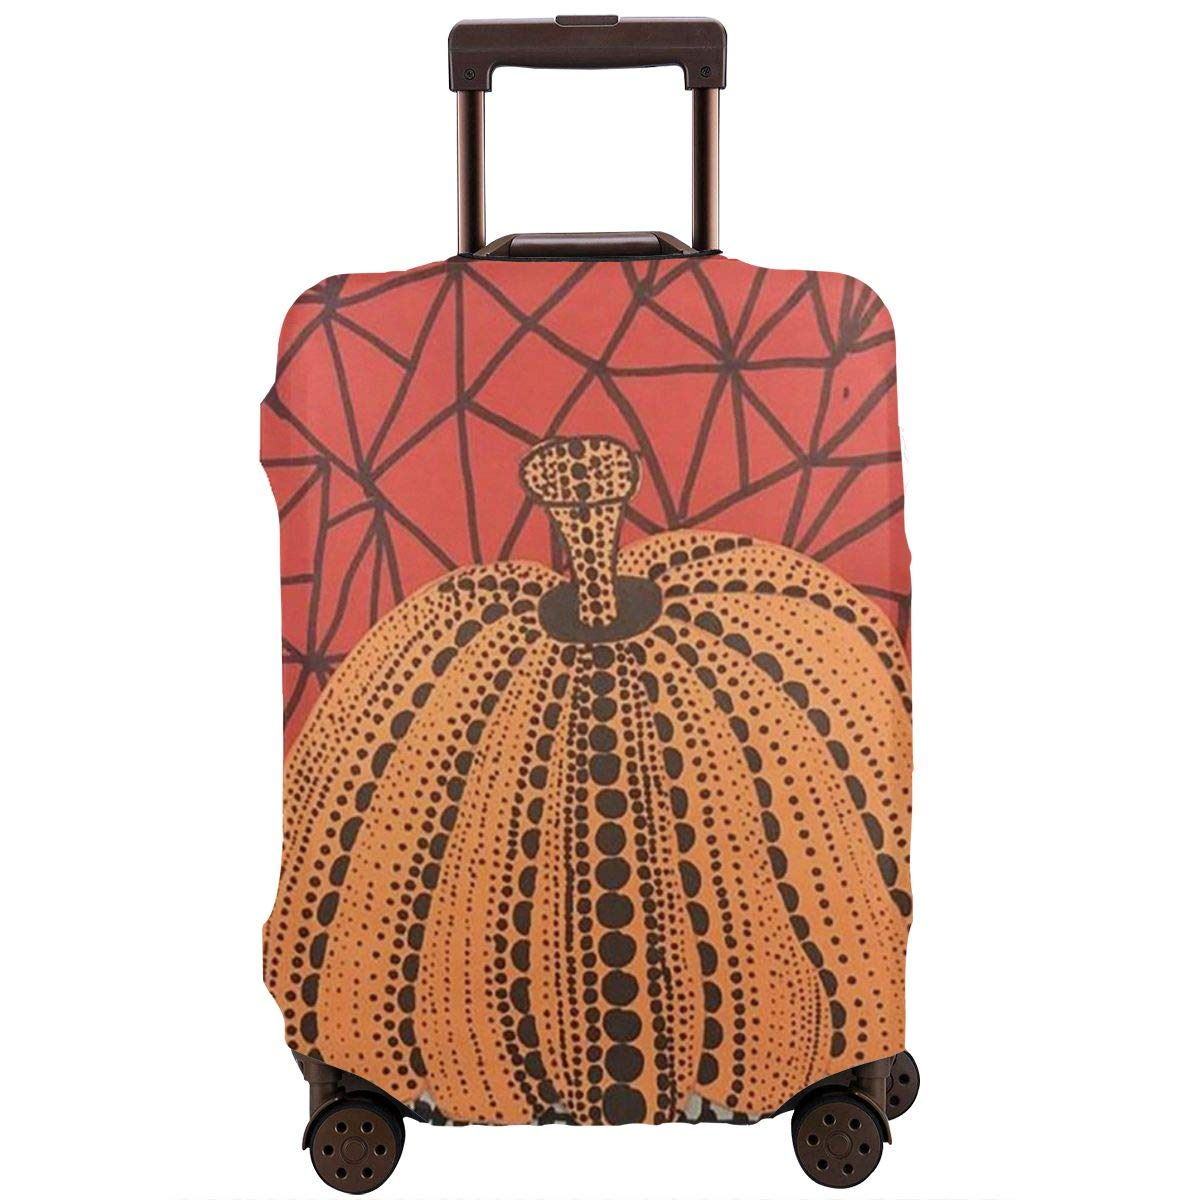 TYDhey Avant Garde Art Fruit Universal Fashion Luggage Suitcase Cover Protector